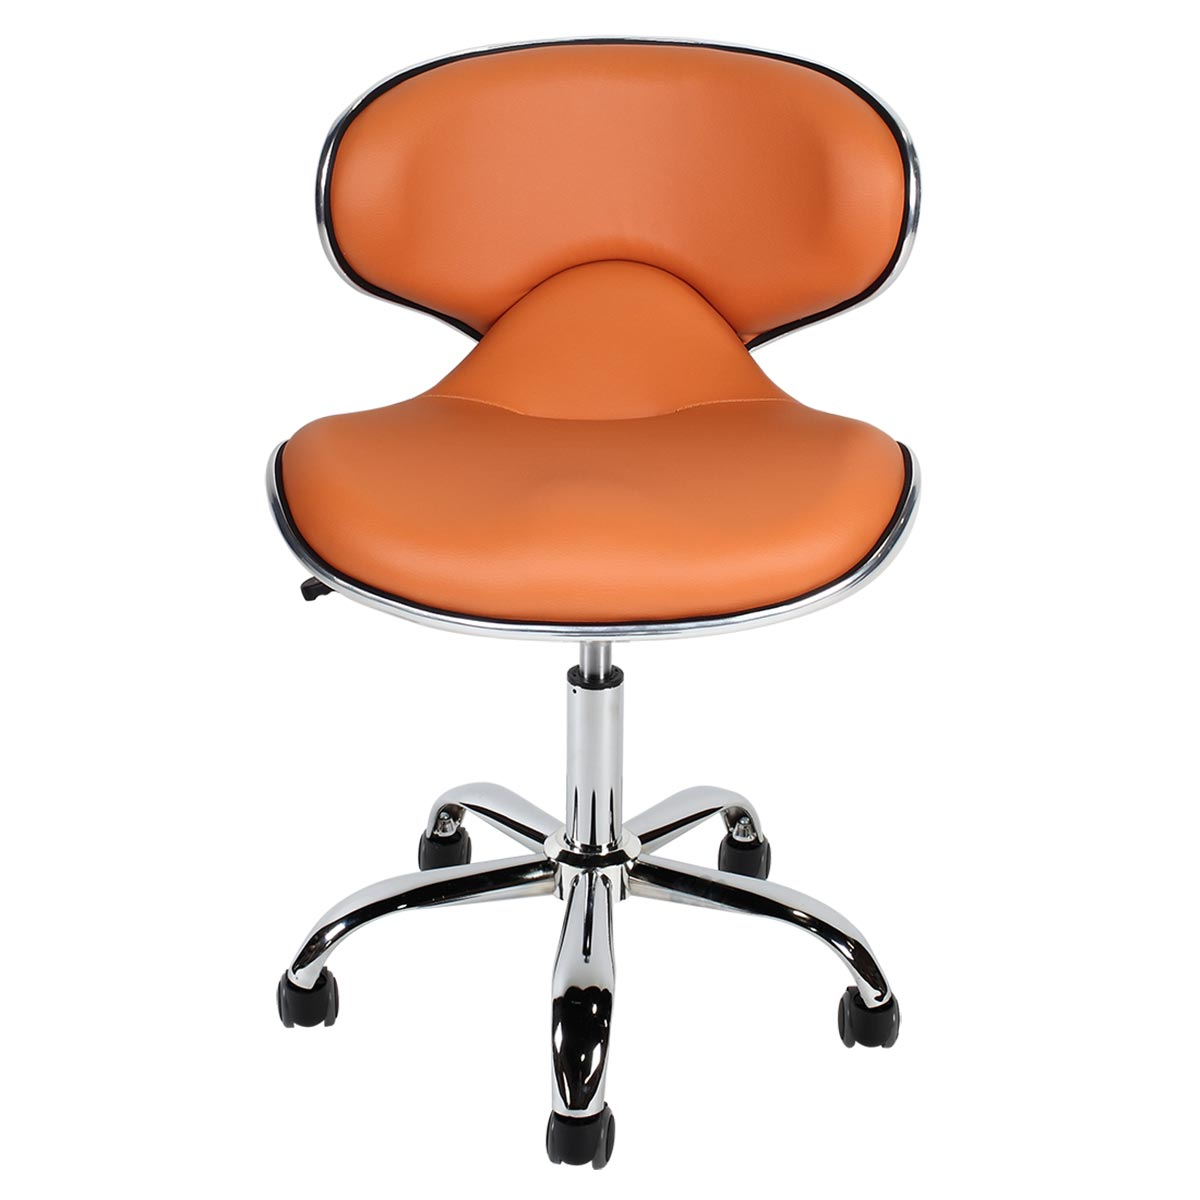 Euro Pedicure / Tech Stool alternative product image 8